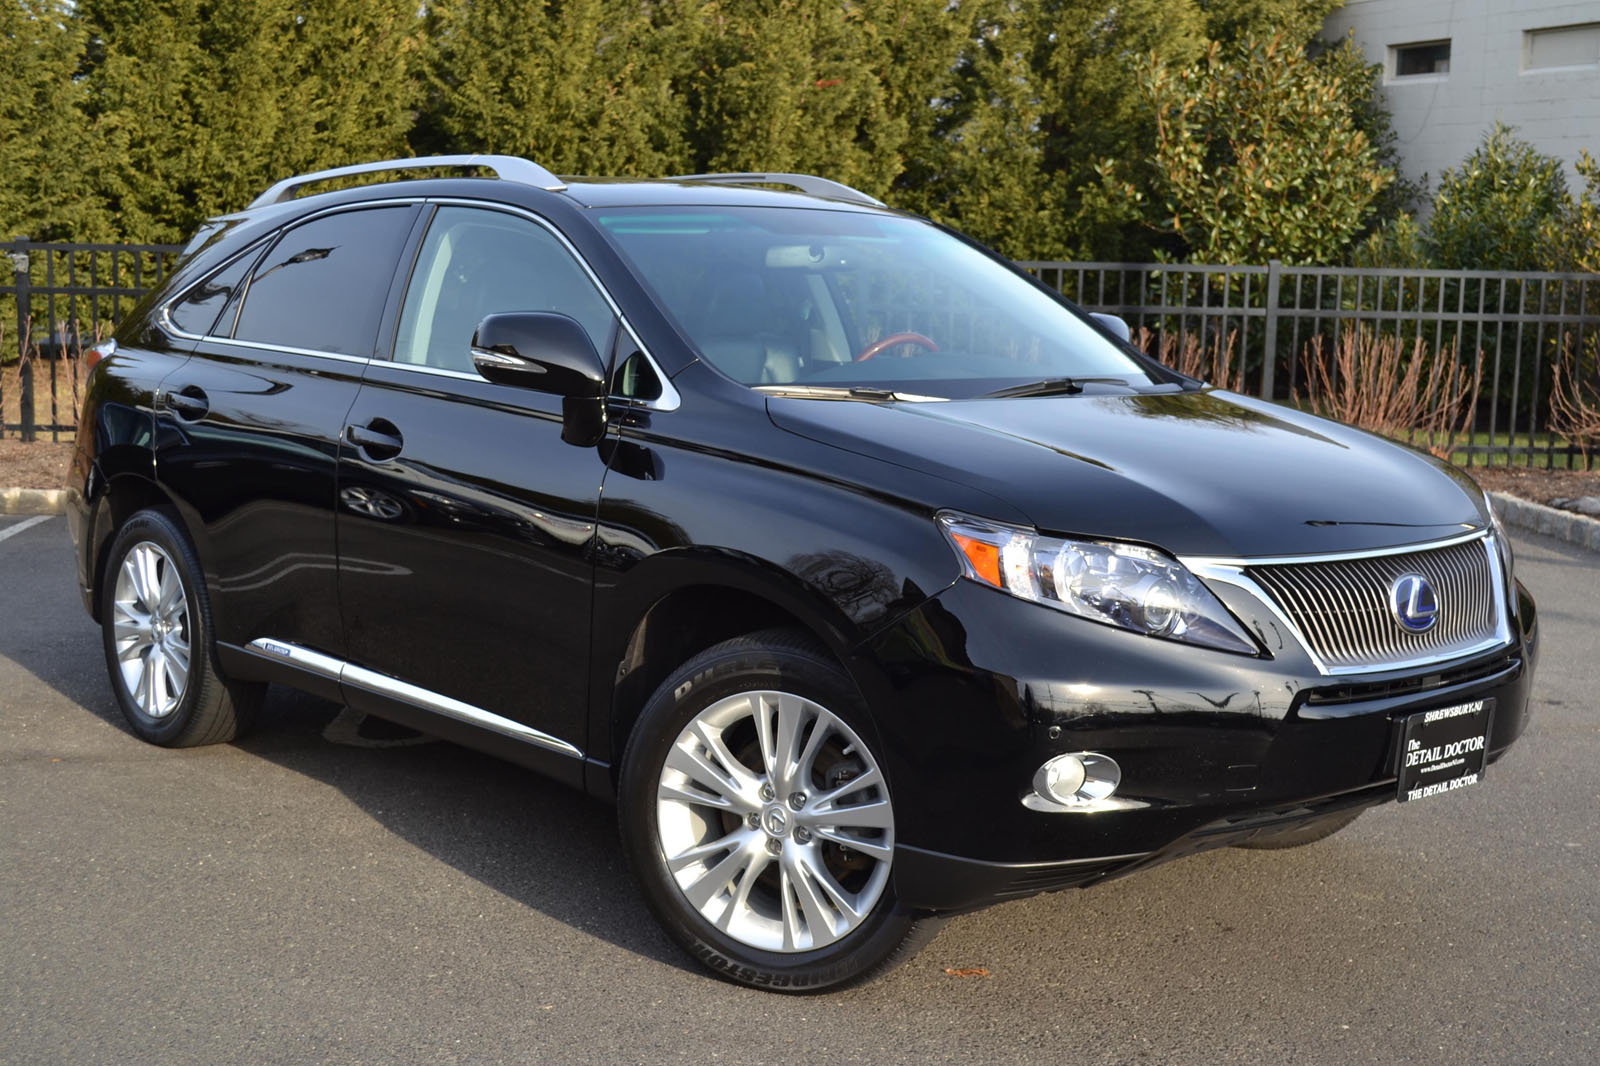 Cars For Sale Nj >> 2012 Lexus RX450H - Hybrid Pre-Owned